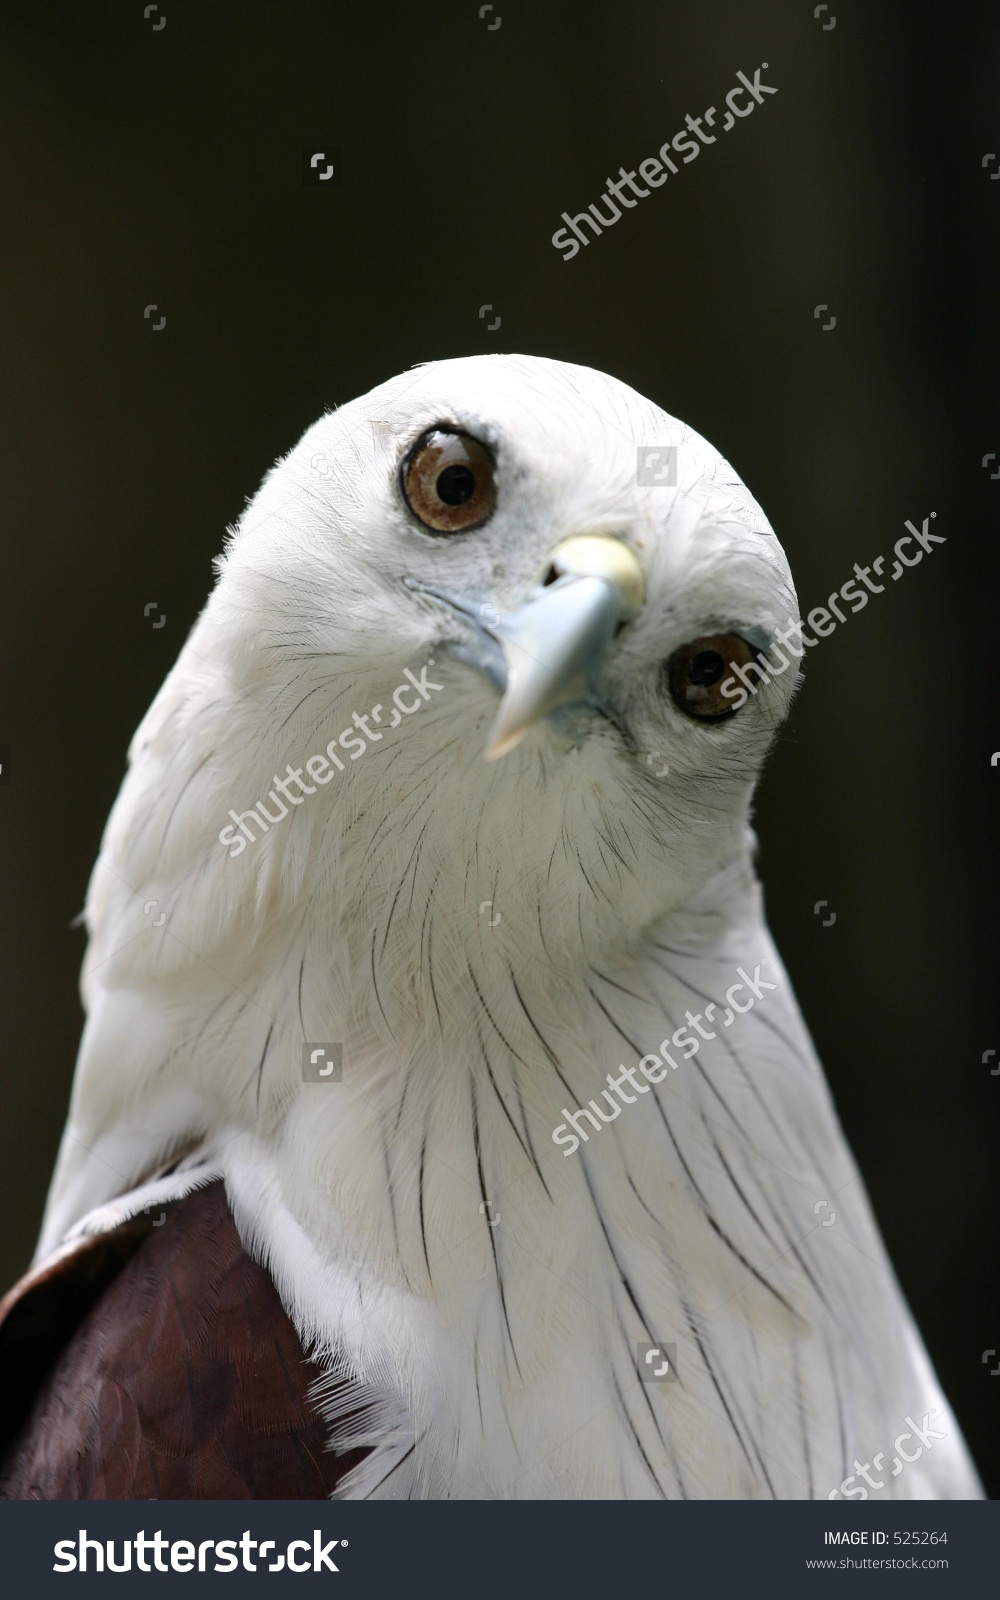 White-bellied Sea Eagle clipart #8, Download drawings